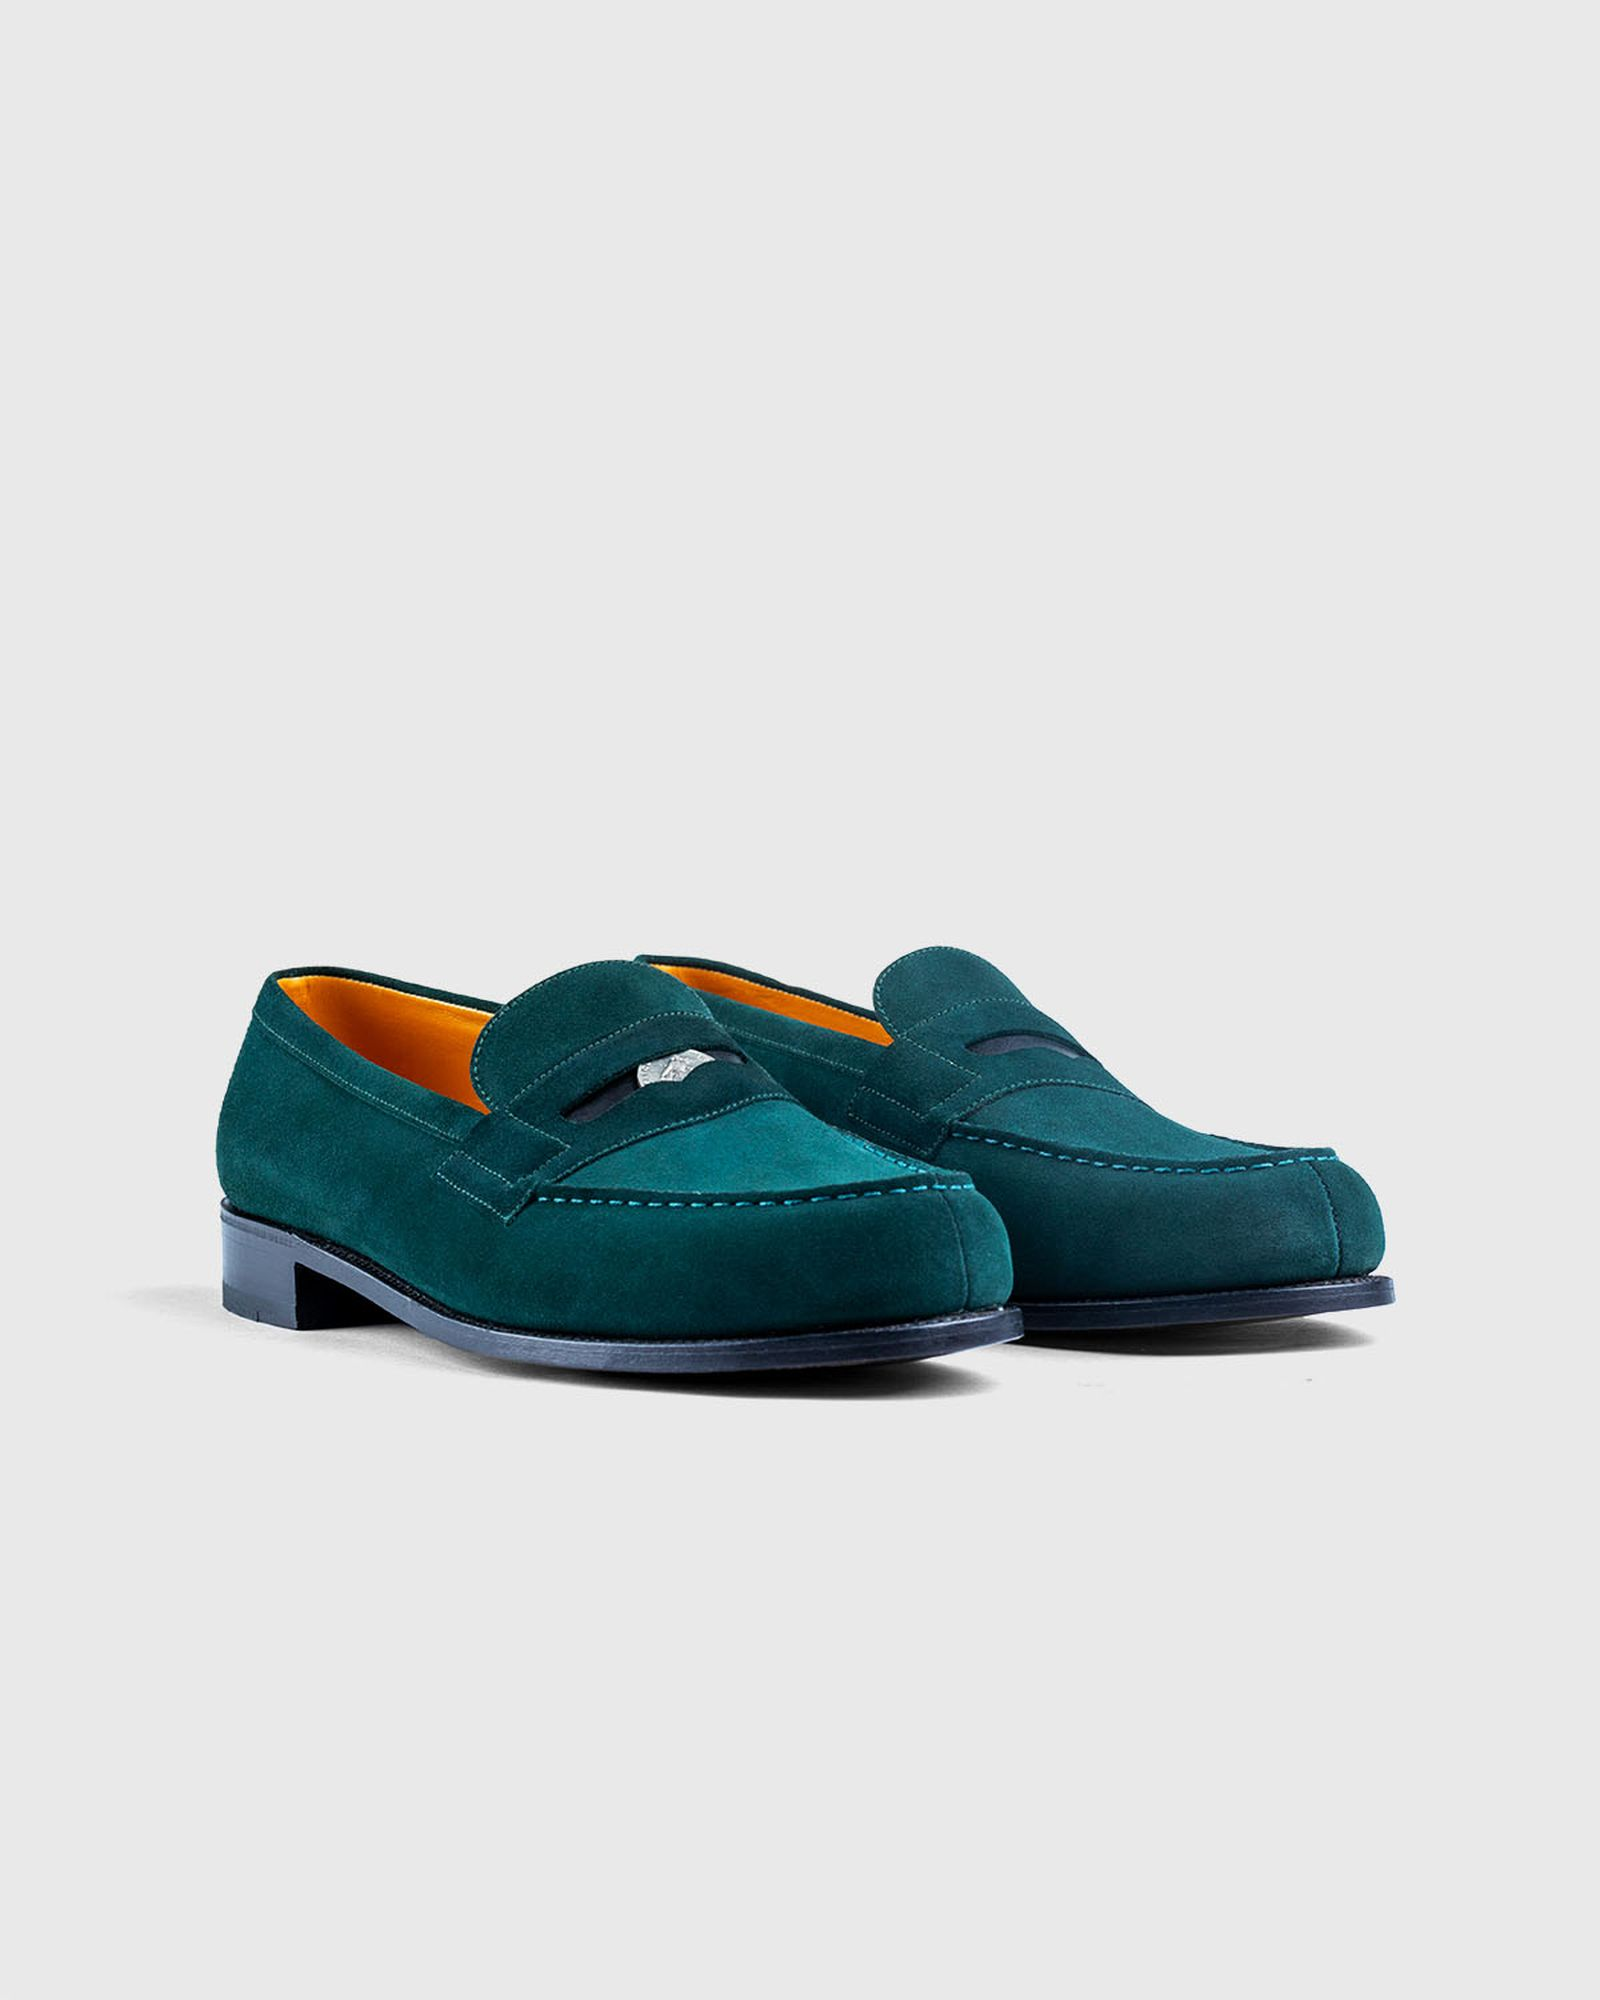 not-in-paris-releases-jm-westion-loafer-02